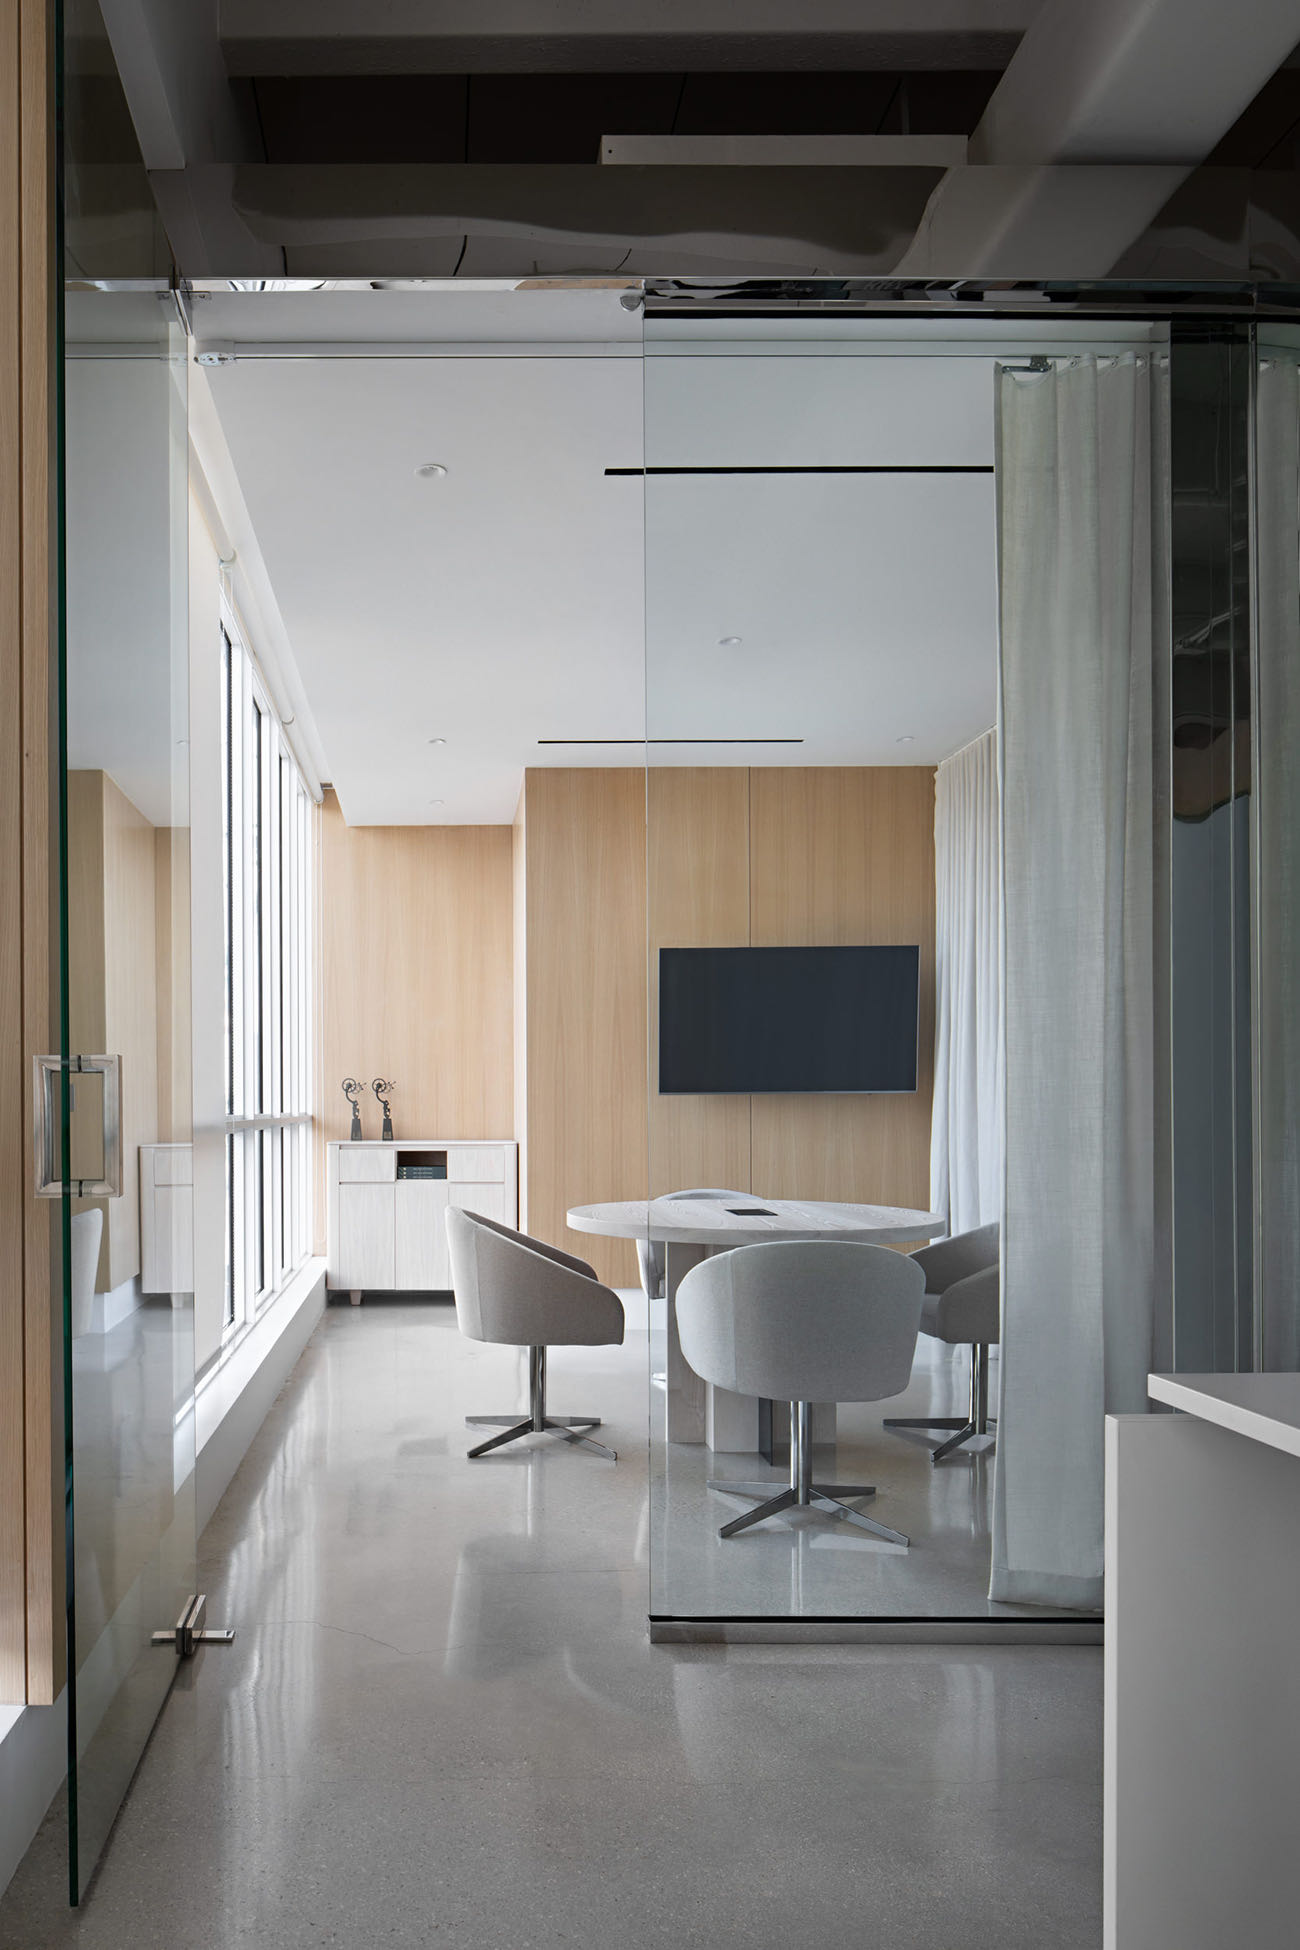 audemars-piguet-office-8